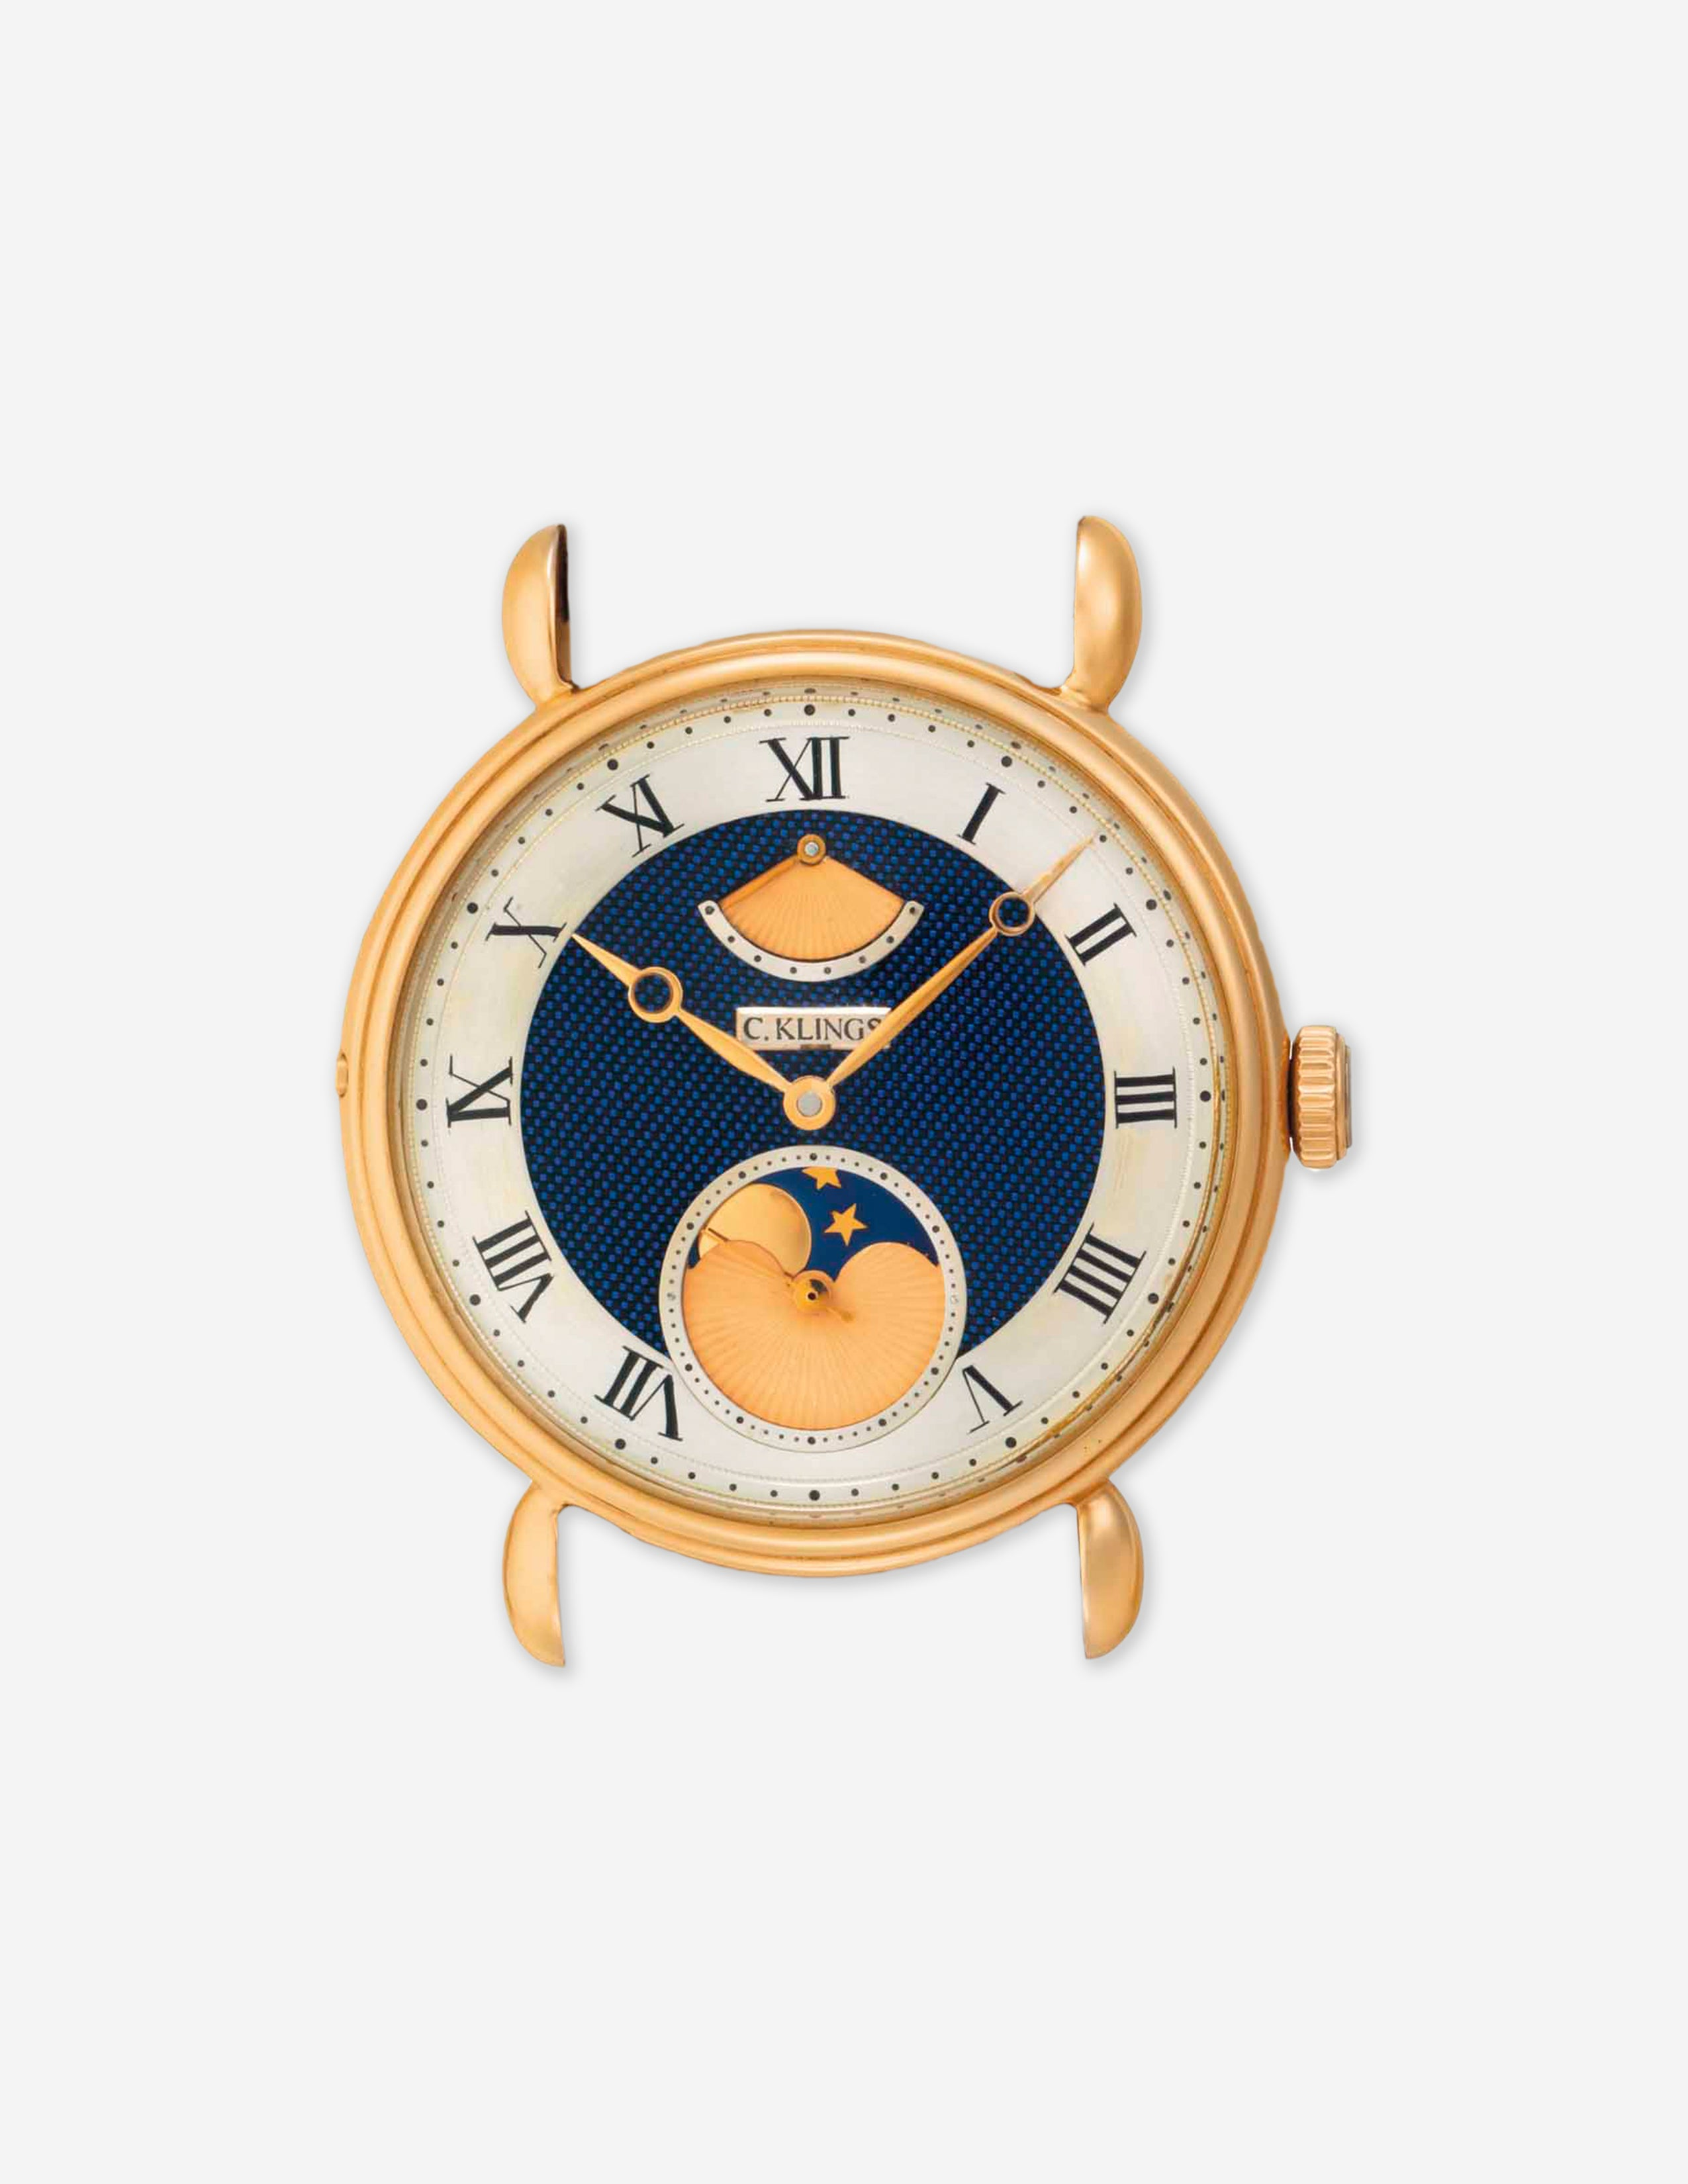 A Christian Klings unique commission yellow gold wristwatch with moon phase and power reserve for A Collected Man London